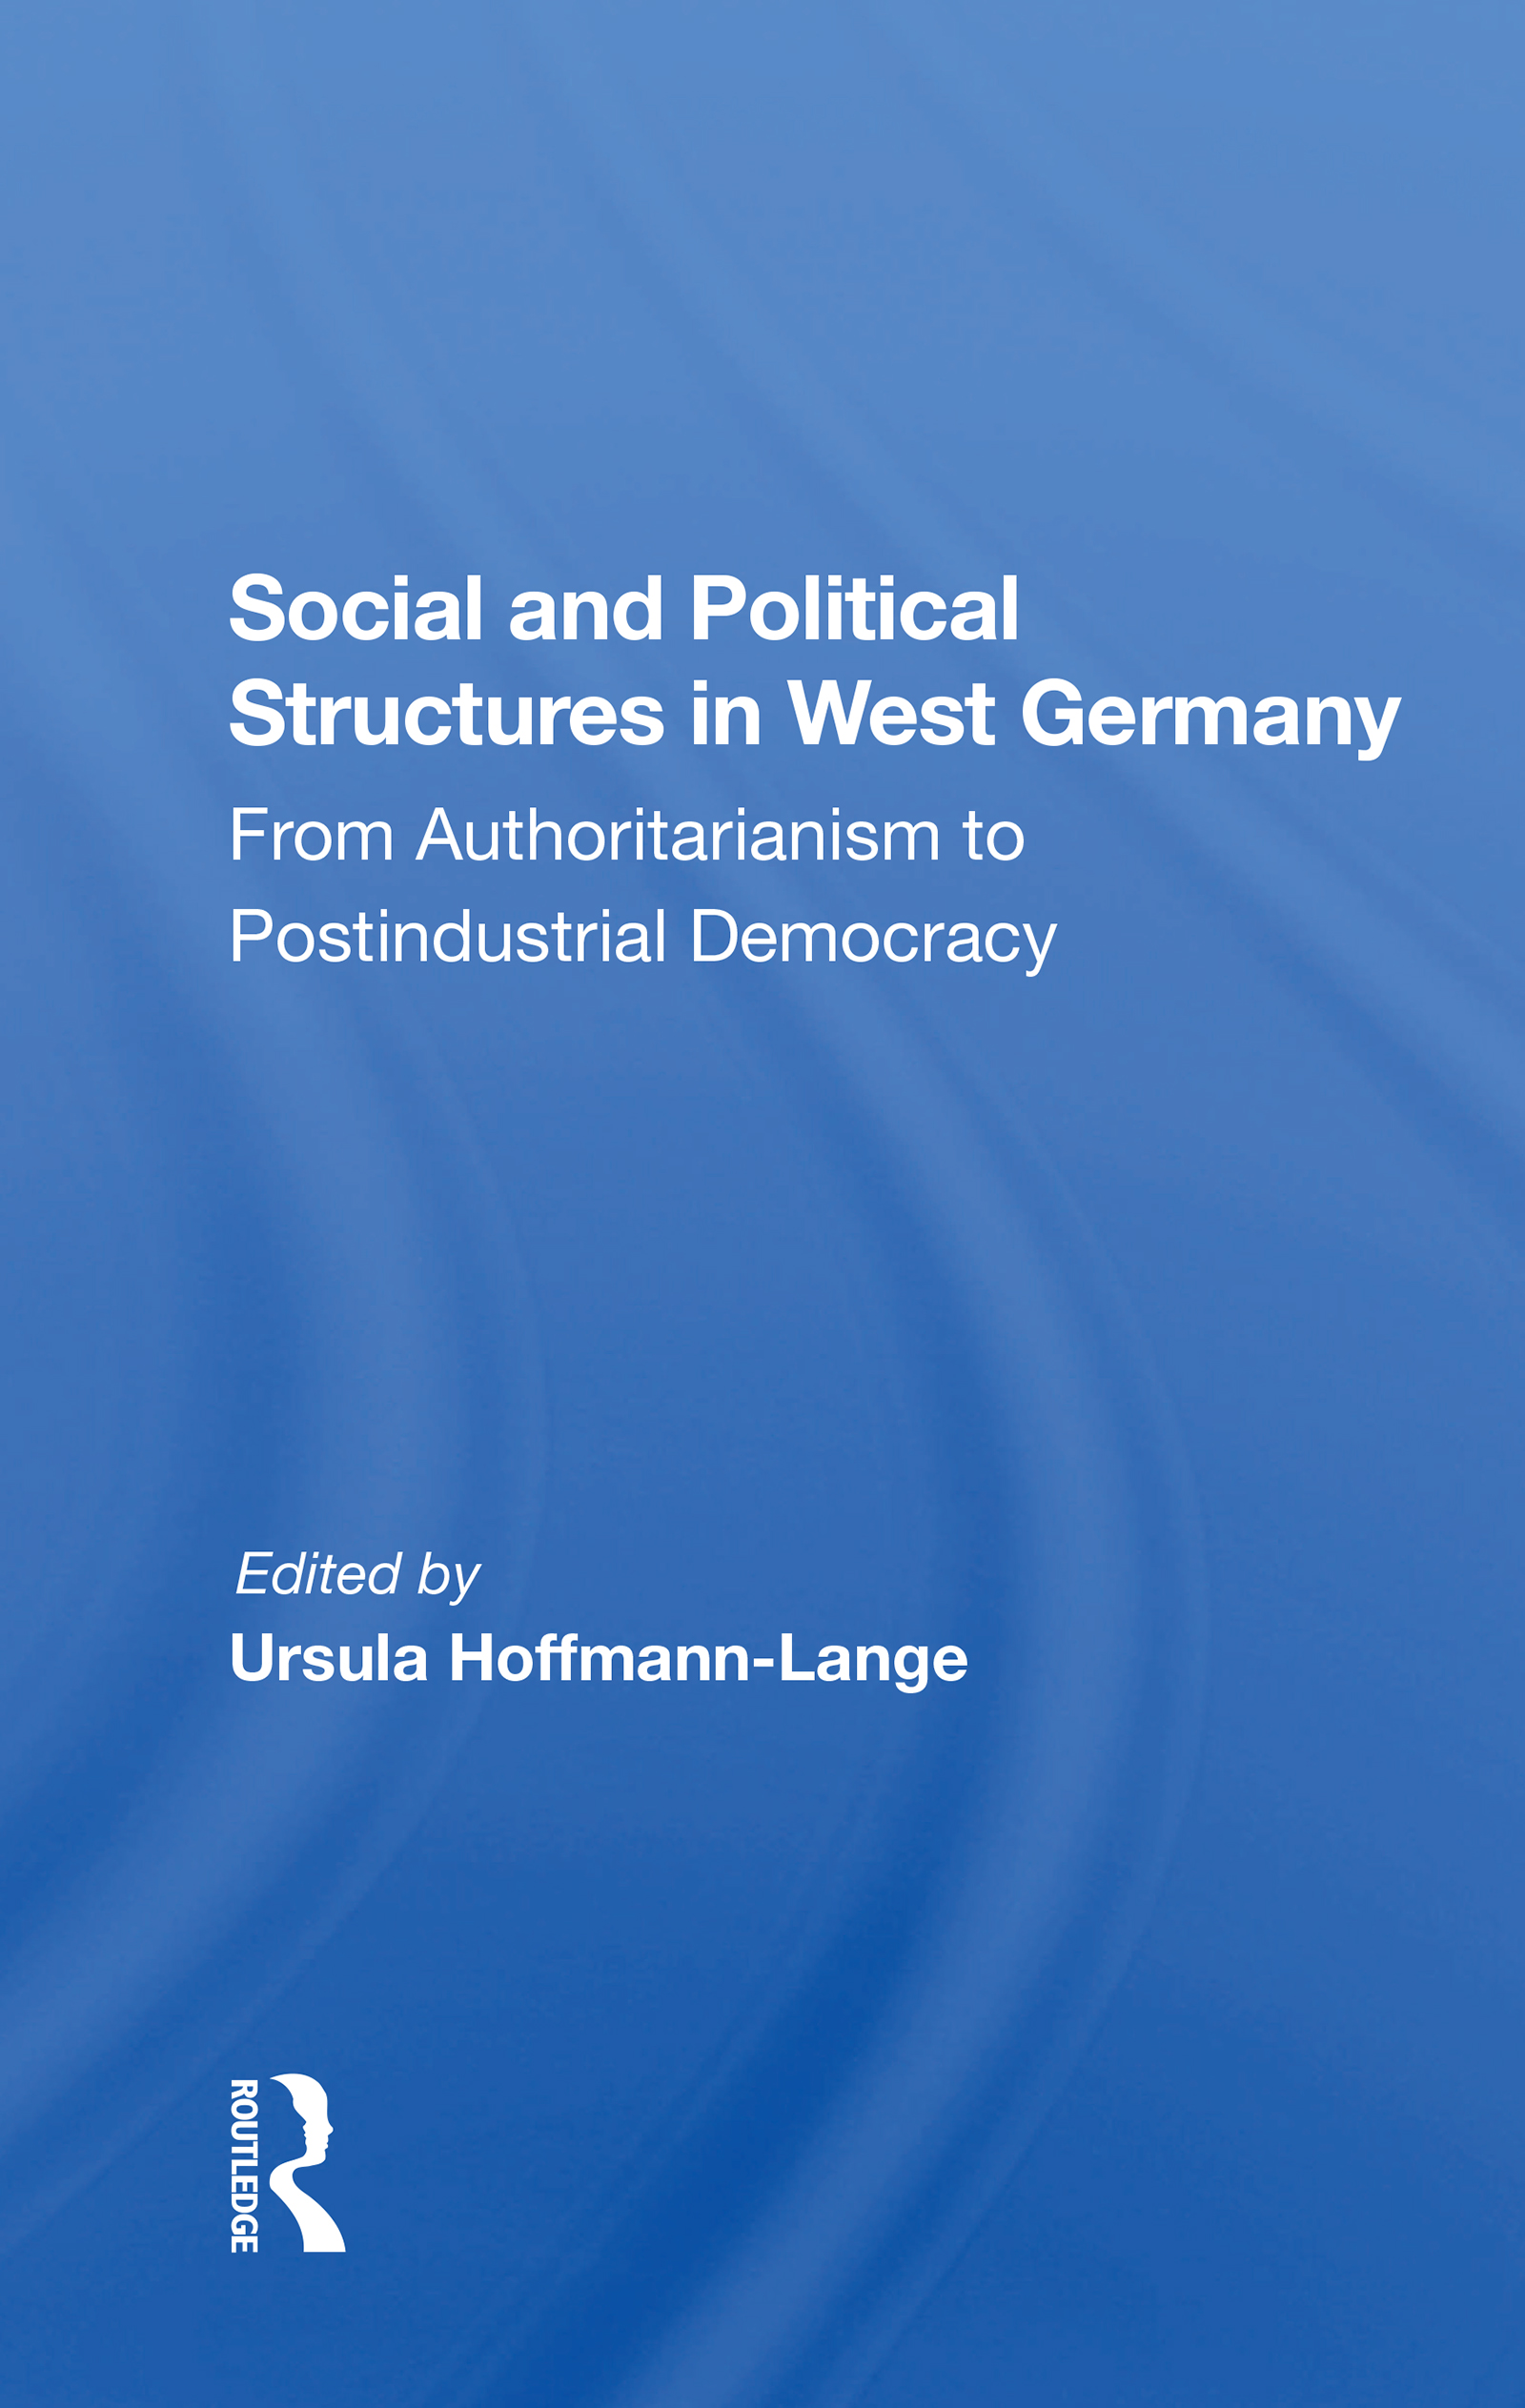 Social and Political Structures in West Germany